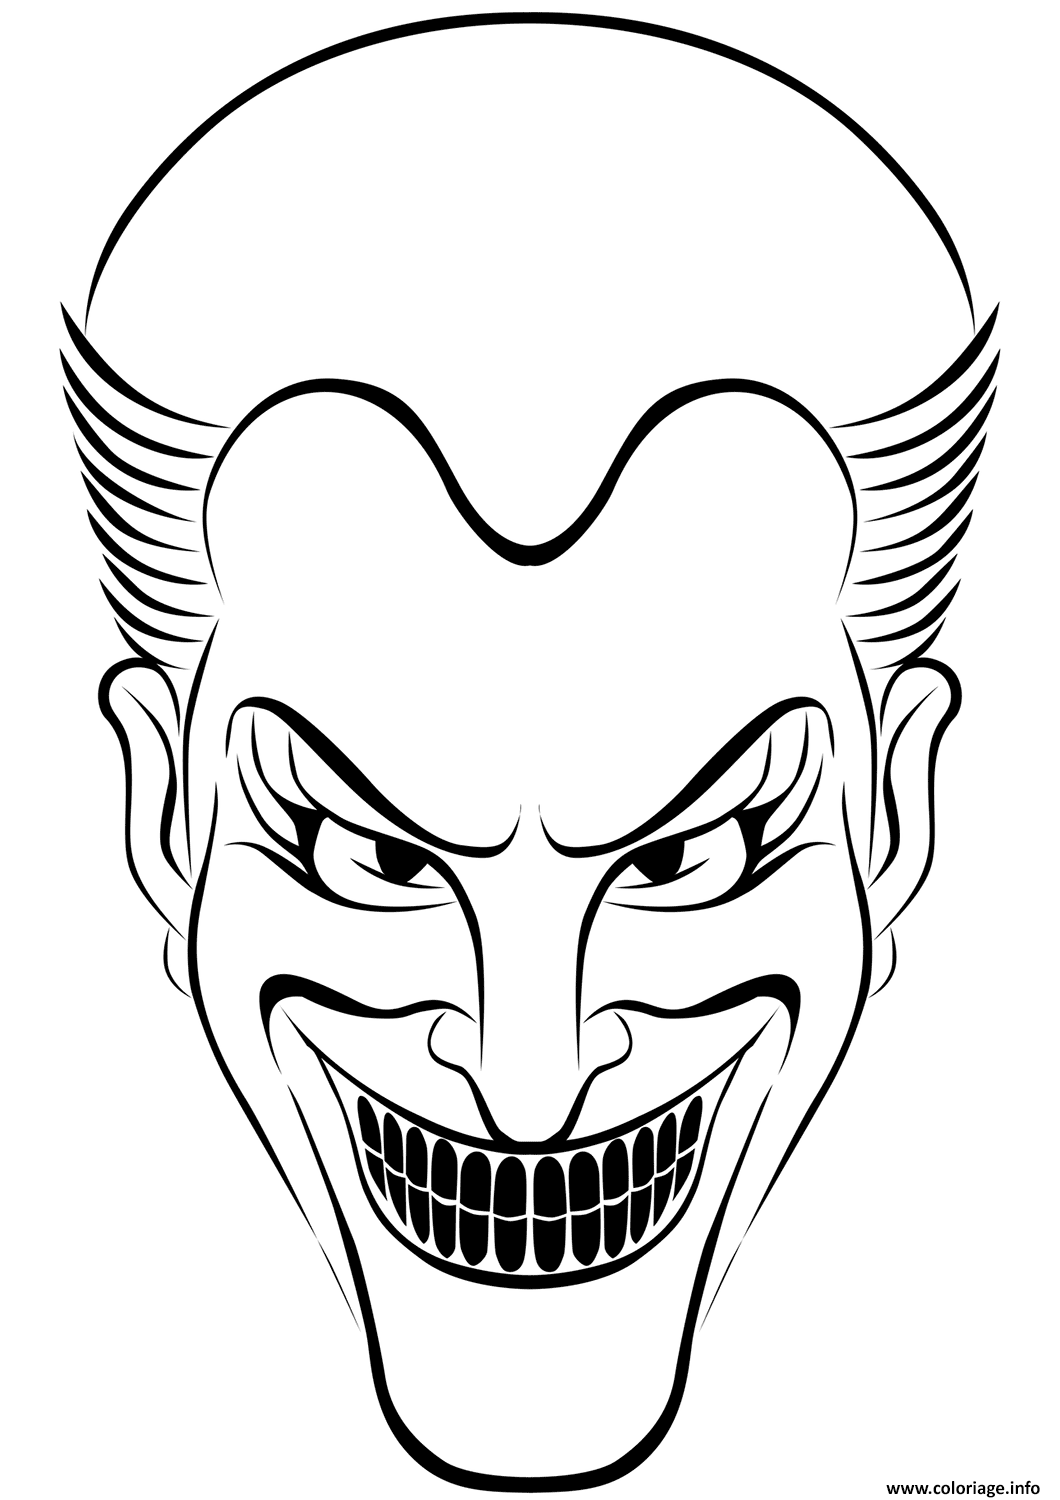 Coloriage Gratuit Joker.Coloriage Joker Halloween Dessin